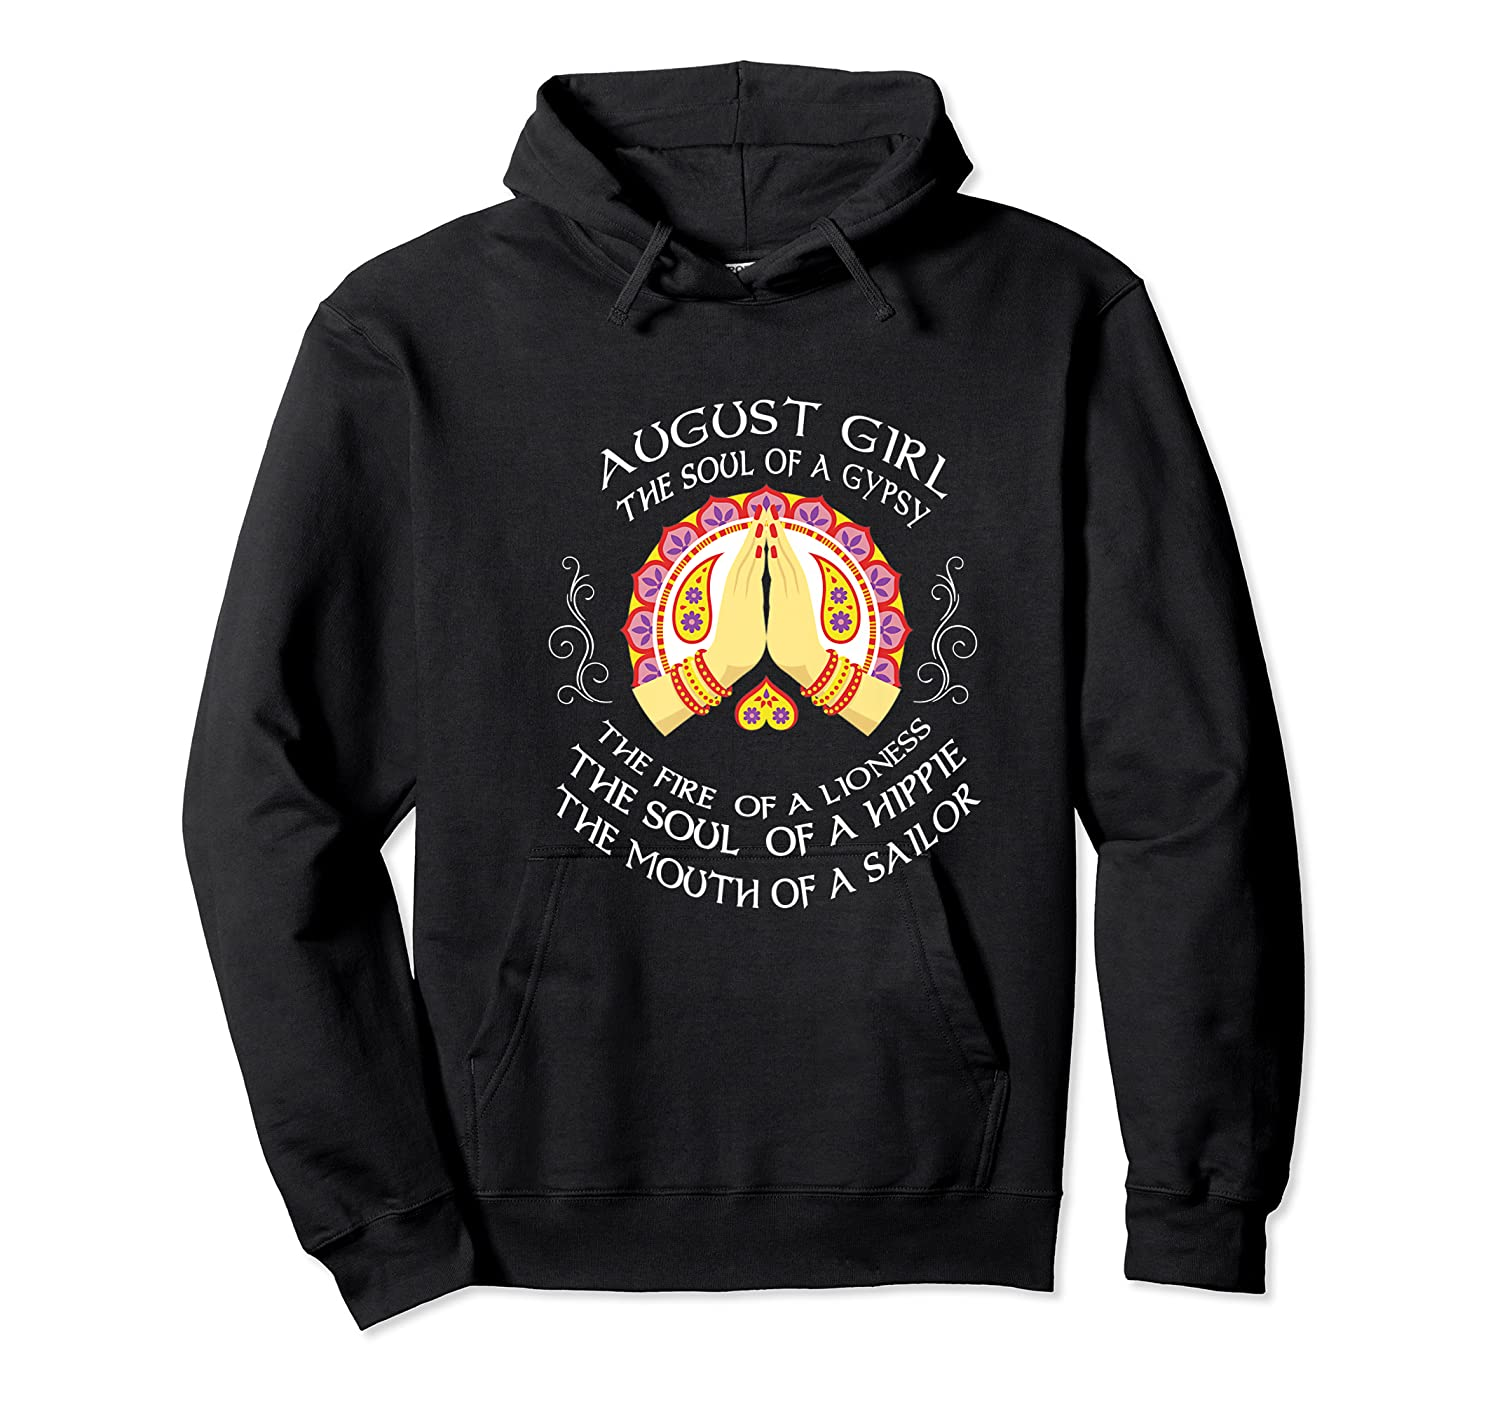 August Girl The Soul Of A Gypsy T Shirt August Girl Birthday Premium T Shirt Unisex Pullover Hoodie